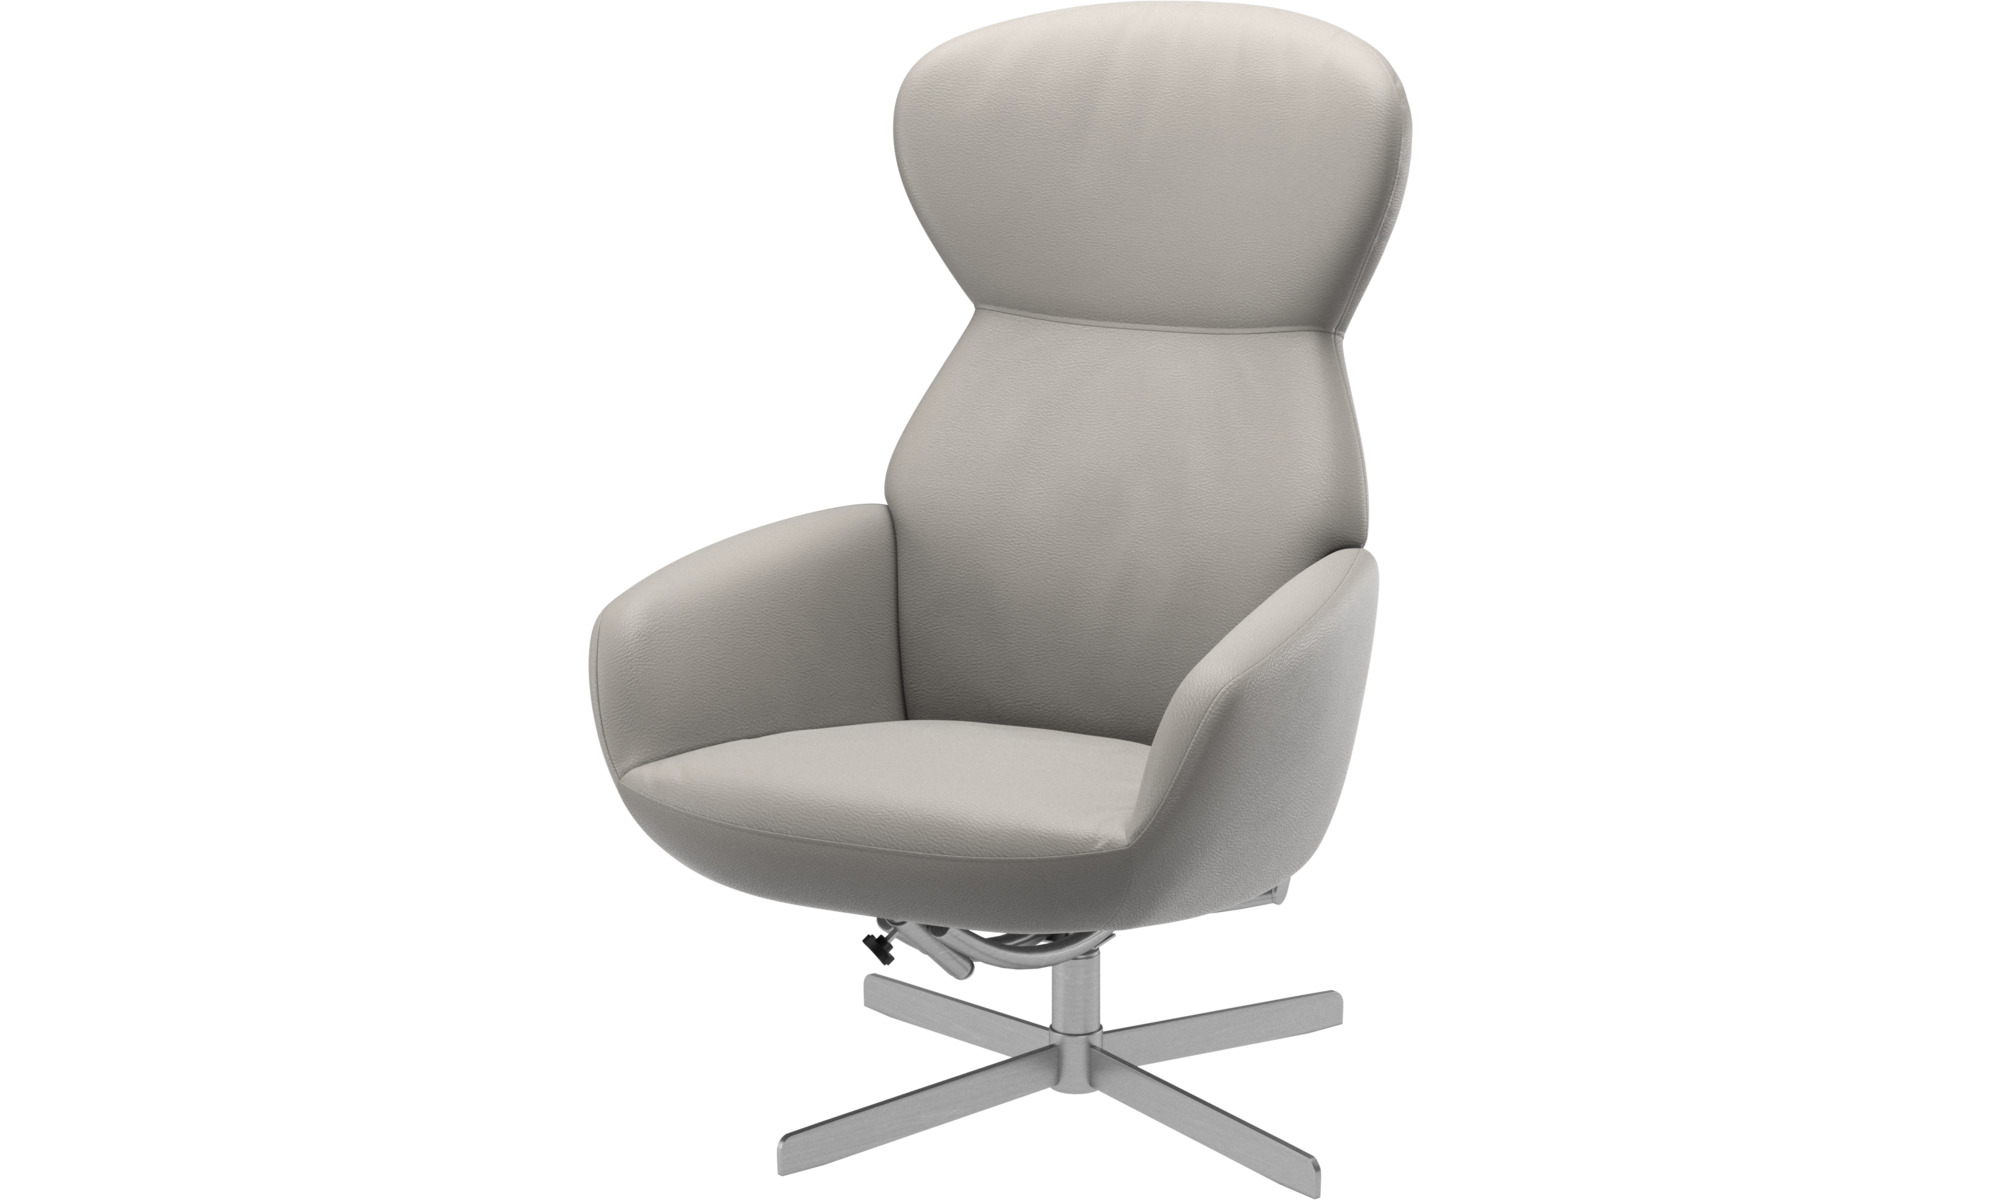 Armchairs - Athena chair with reclining back function and swivel base ...